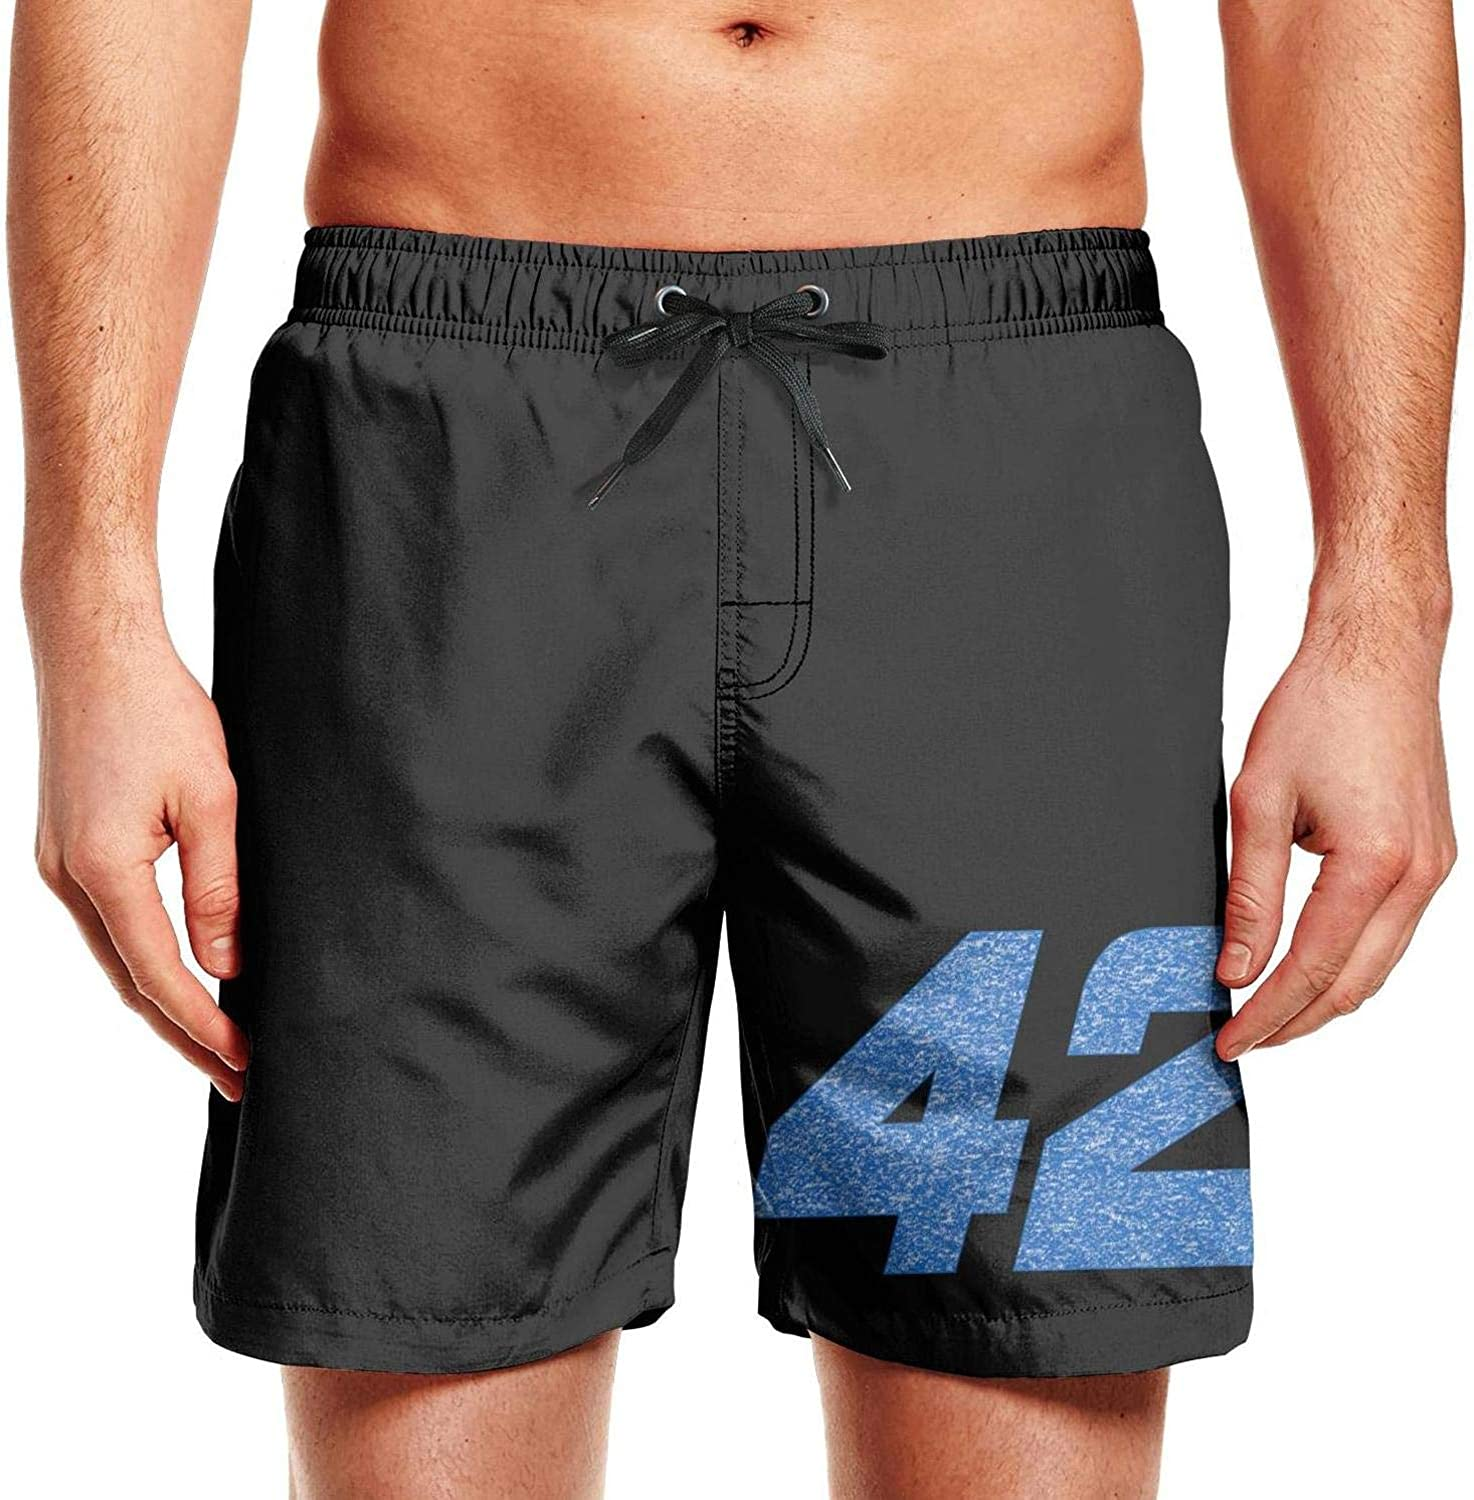 NIANLJHDe Mens Graphic Mens Swimwear Skatekyle-larson-number-42-driver-target-racing Summer Quick Dry Beach Shorts